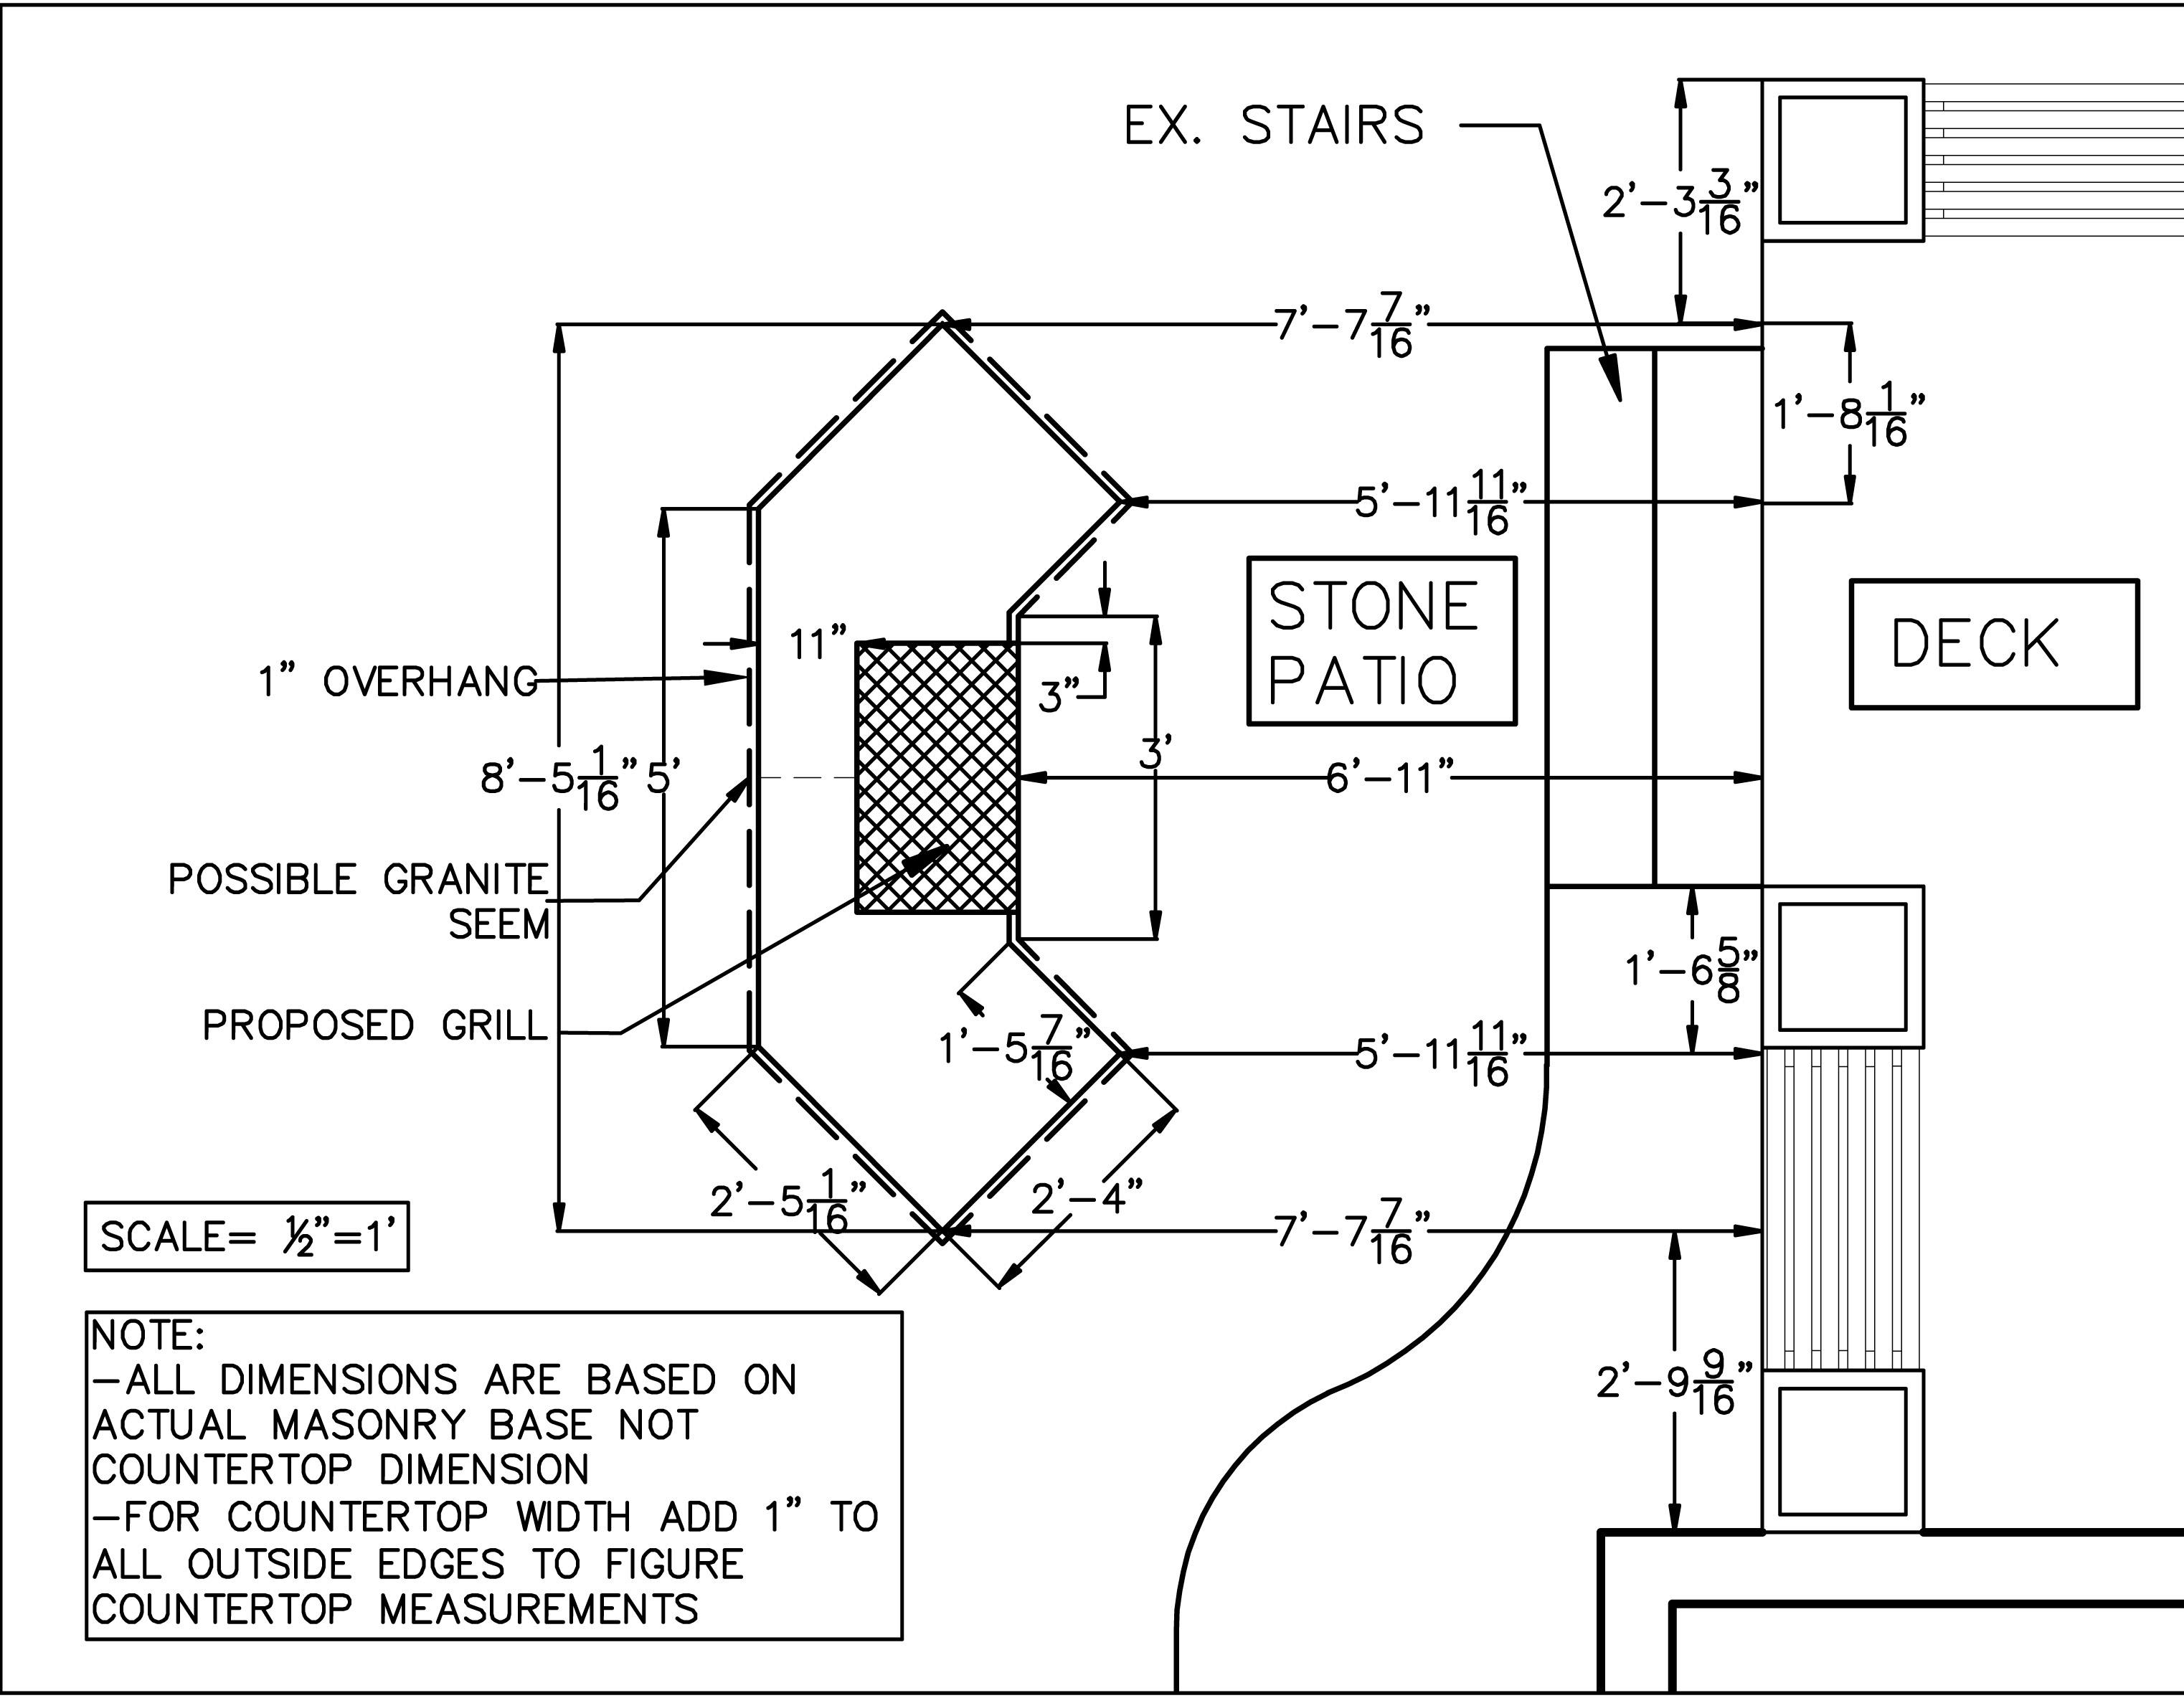 Outdoor Kitchen Architecture Design Ideas Plan Contemporary Archicad Autocad Drawing Landscape Inspiration How To Design Kitchen Layout From Blah Into Fantastic (View 2 of 20)